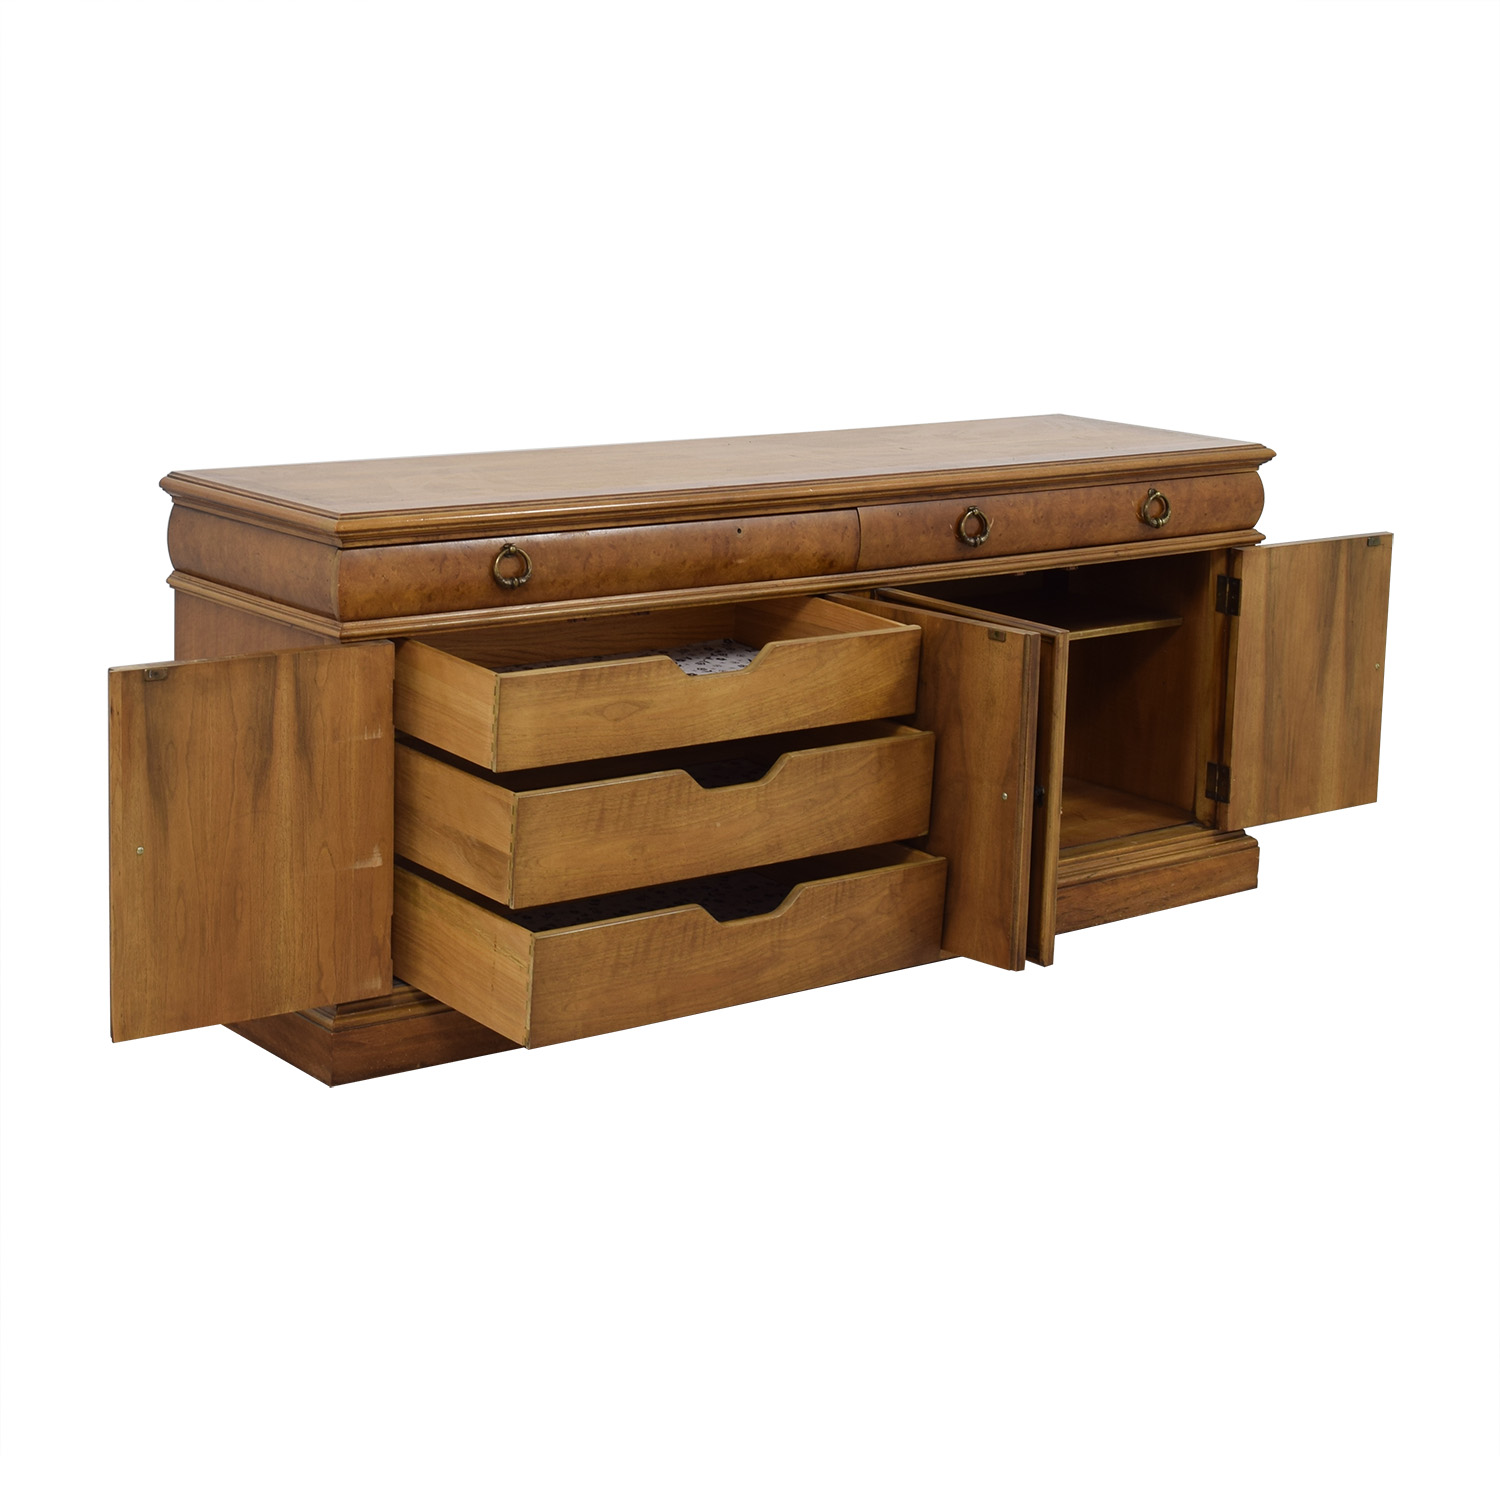 Dining Storage Cabinets hen how to Home Decorating Ideas